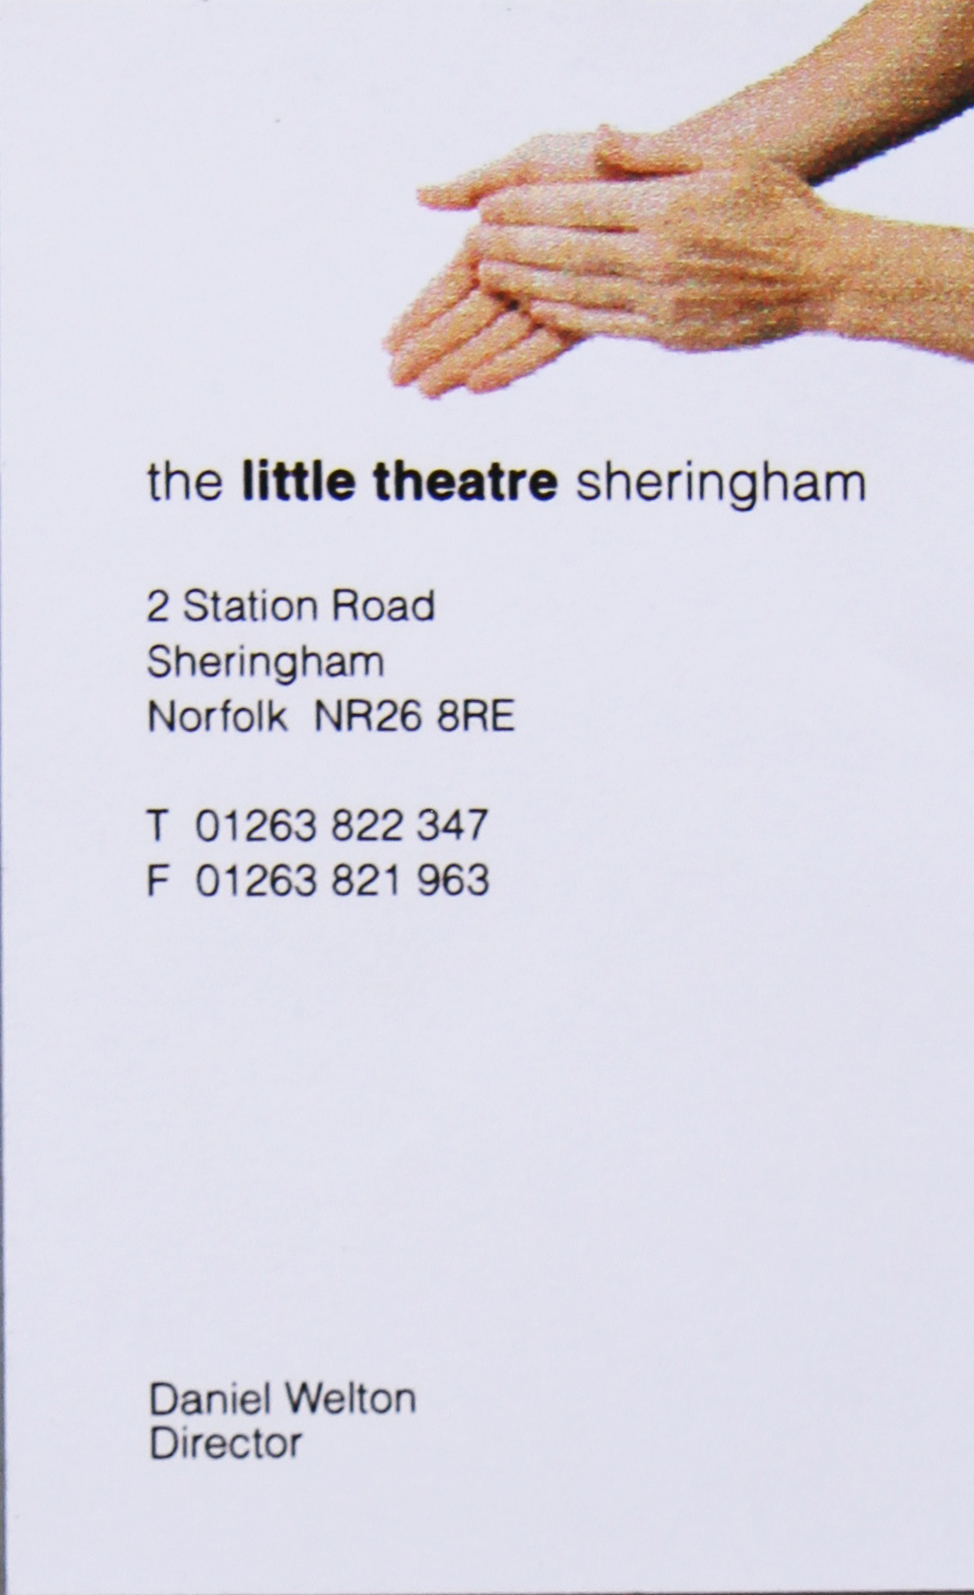 Little Theatre biz card